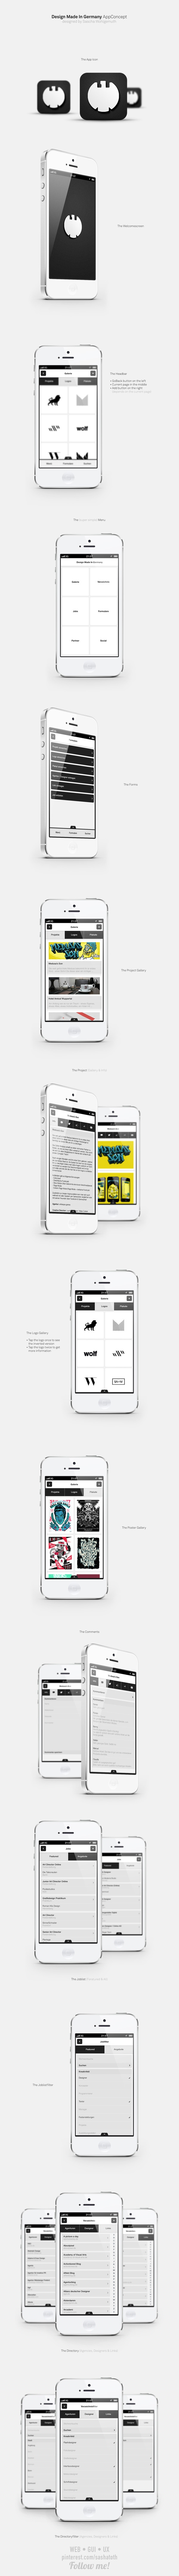 DMIG AppConcept *** Especially I want to thank Niklas Coskan, Mirco Kurth (28 LIMITED BRAND), Laurids Düllmann and ZWO rundum kommunikation GmbH for their content support. *** by Sascha Wohlgemuth, via Behance